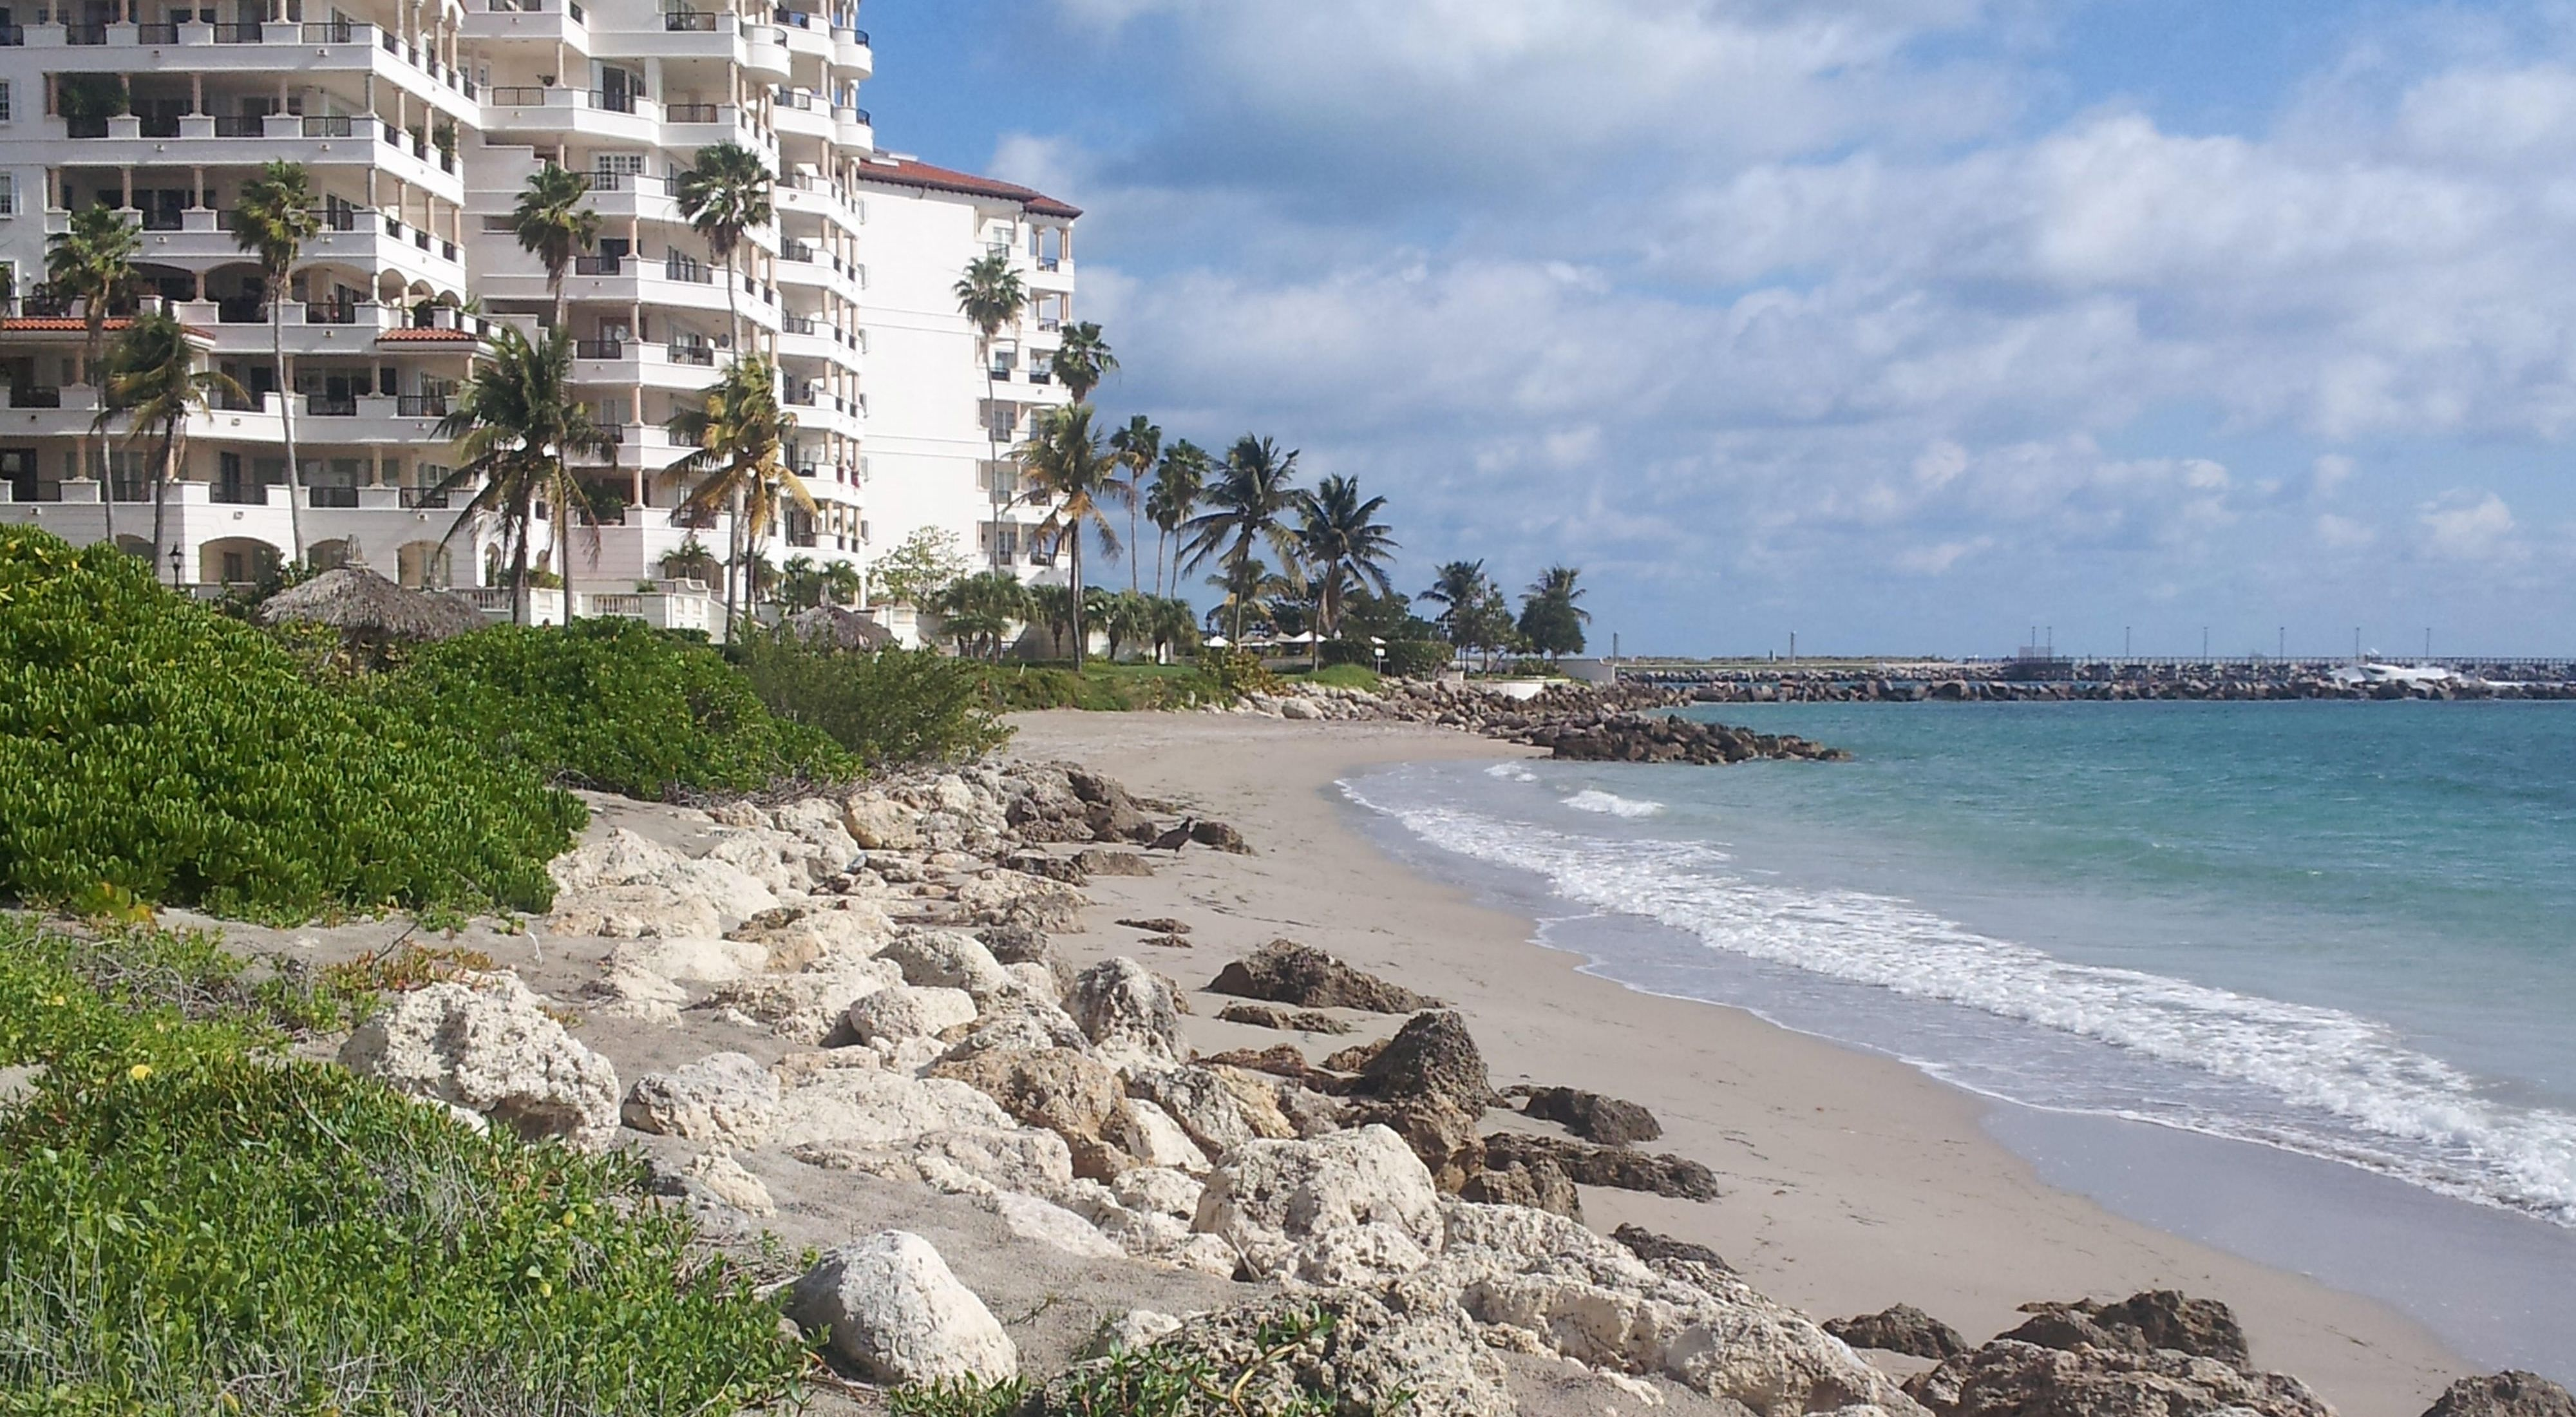 A highrise condominium building sits very near to the ocean shoreline with blue water, rocks and a sandy beach in Fisher Island, located in the Miami, Florida metropolitan are